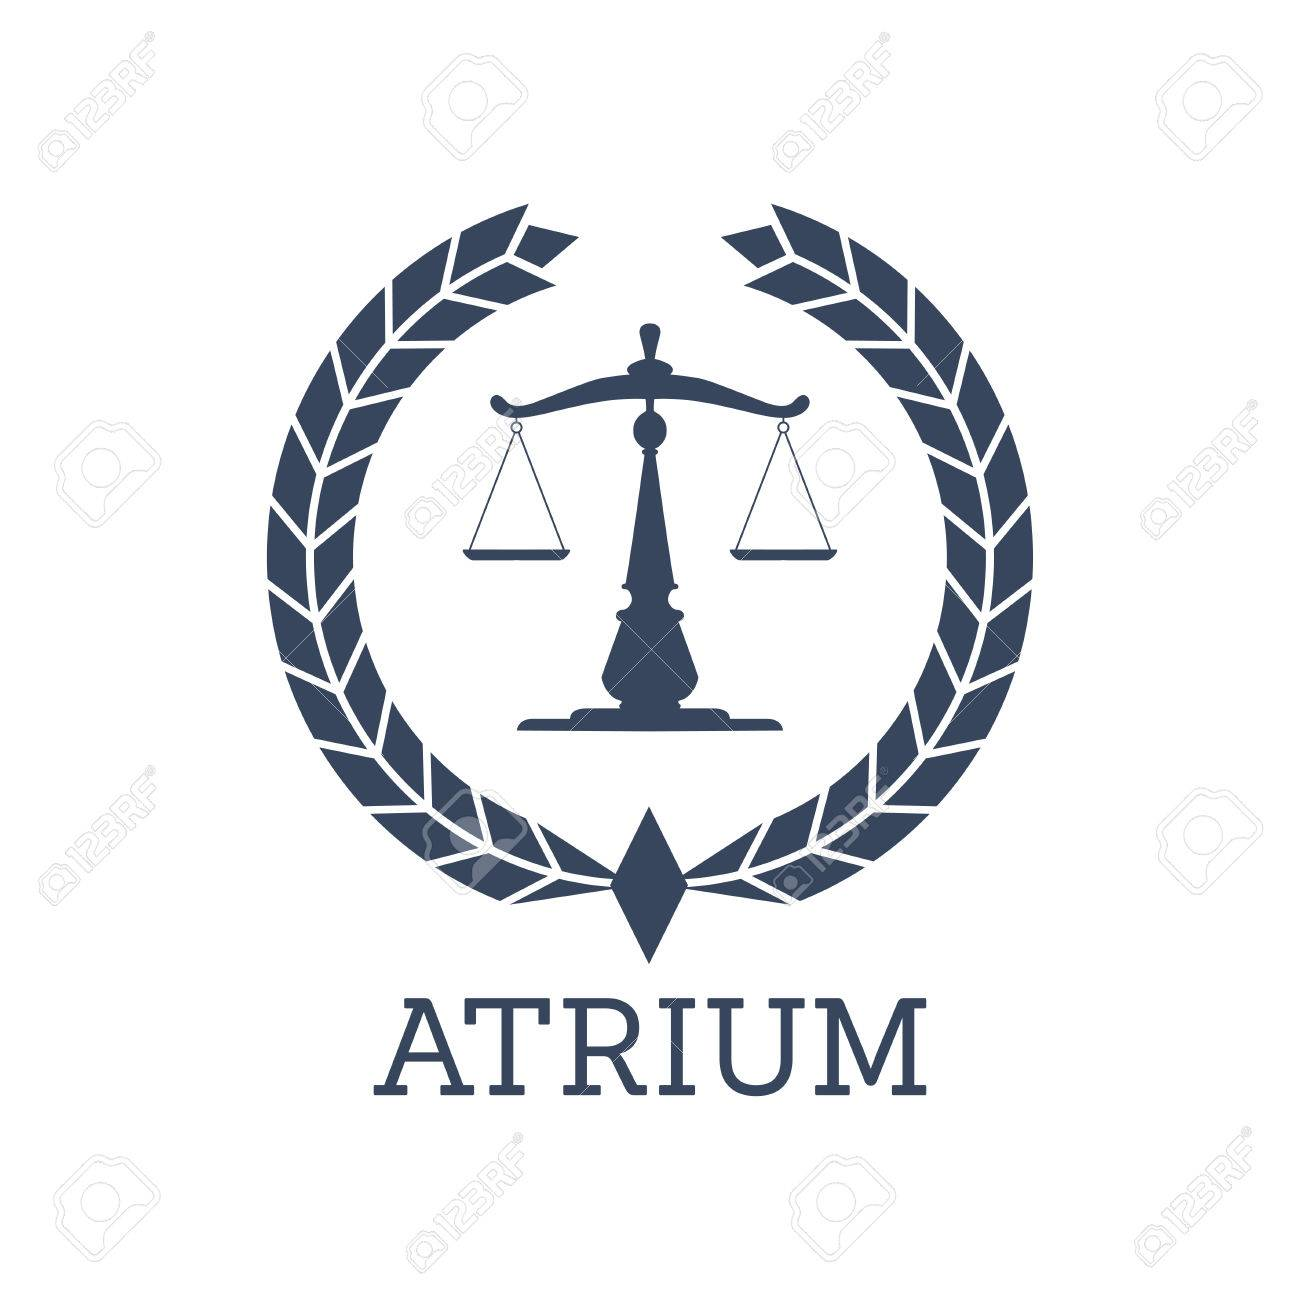 Juridical Or Legal Center Or Company Icon Atrium Emblem With Scales